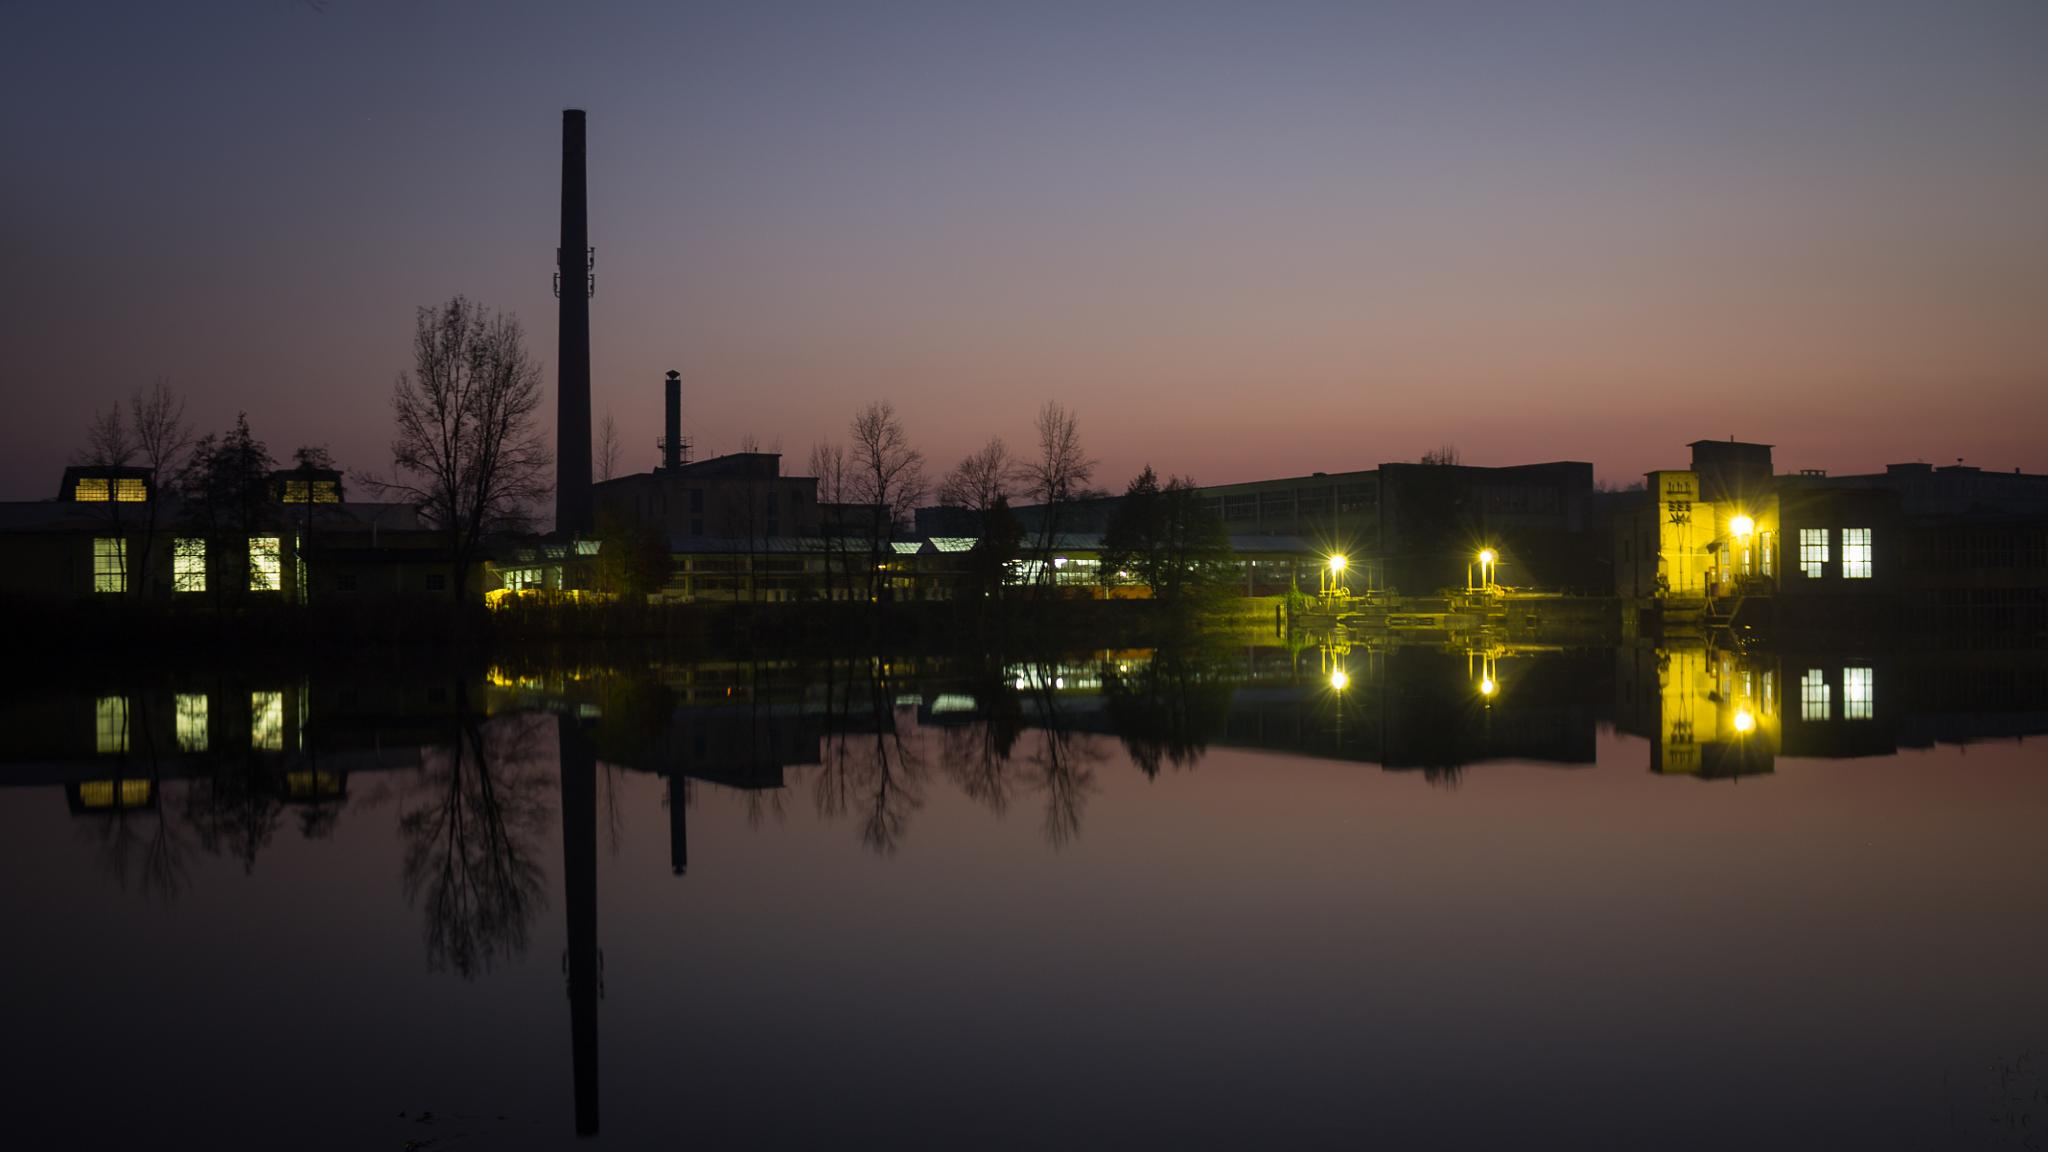 Sunset of an industry by oliversvob